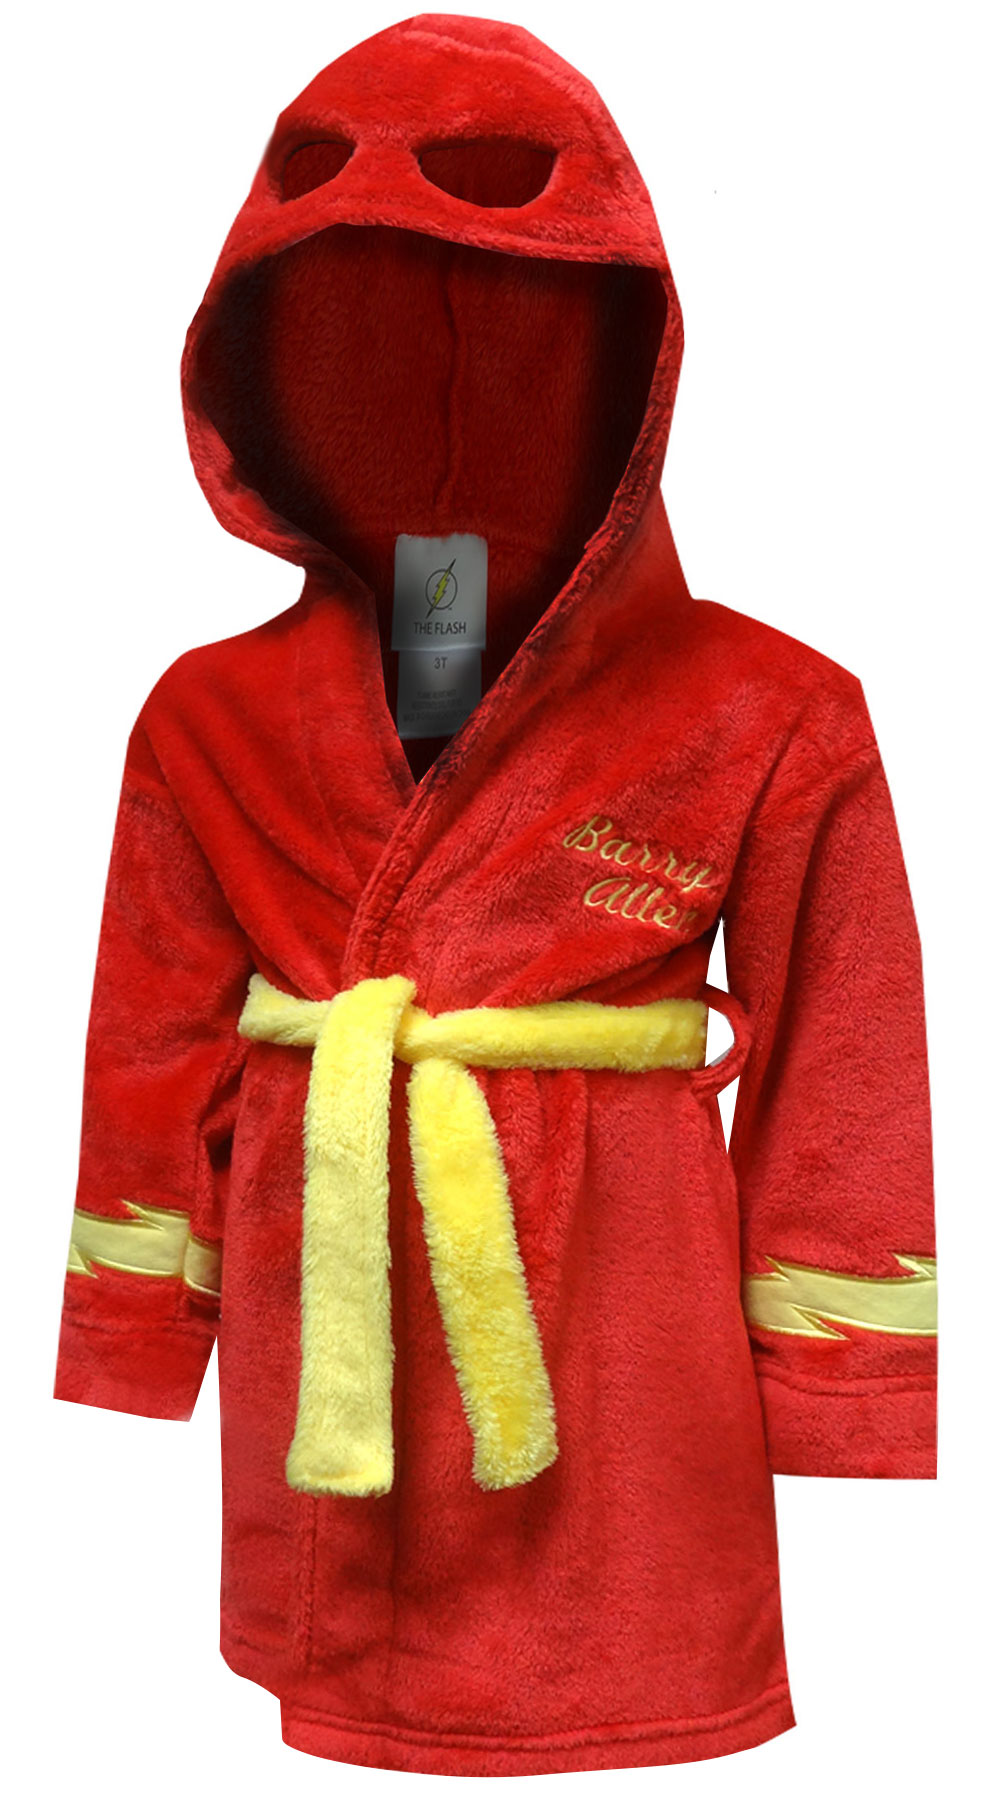 Image of DC Comics Flash I am Barry Allen Plush Toddler Robe for boys